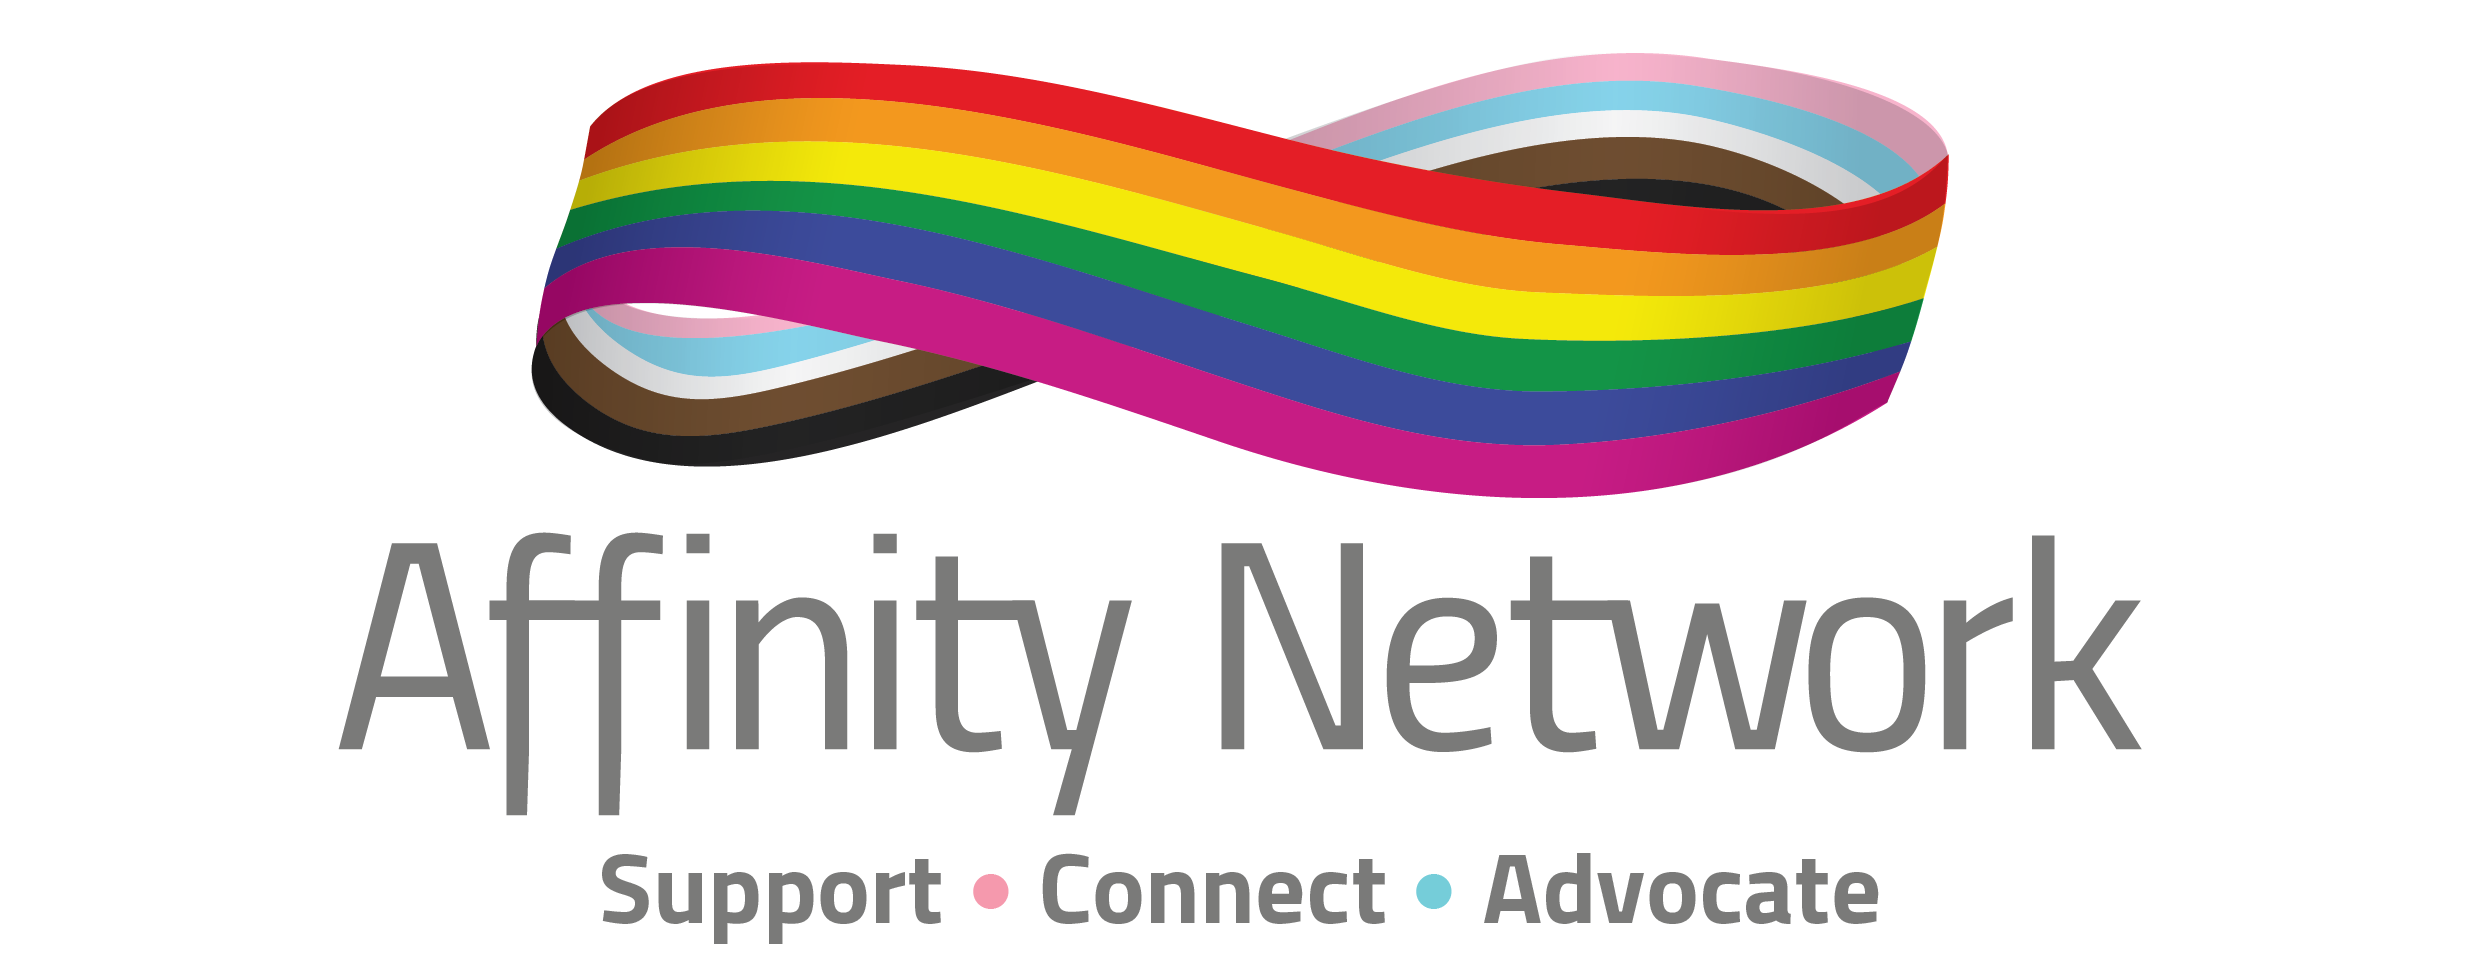 Logo - Affinity Network. Support. Connect. Advocate.